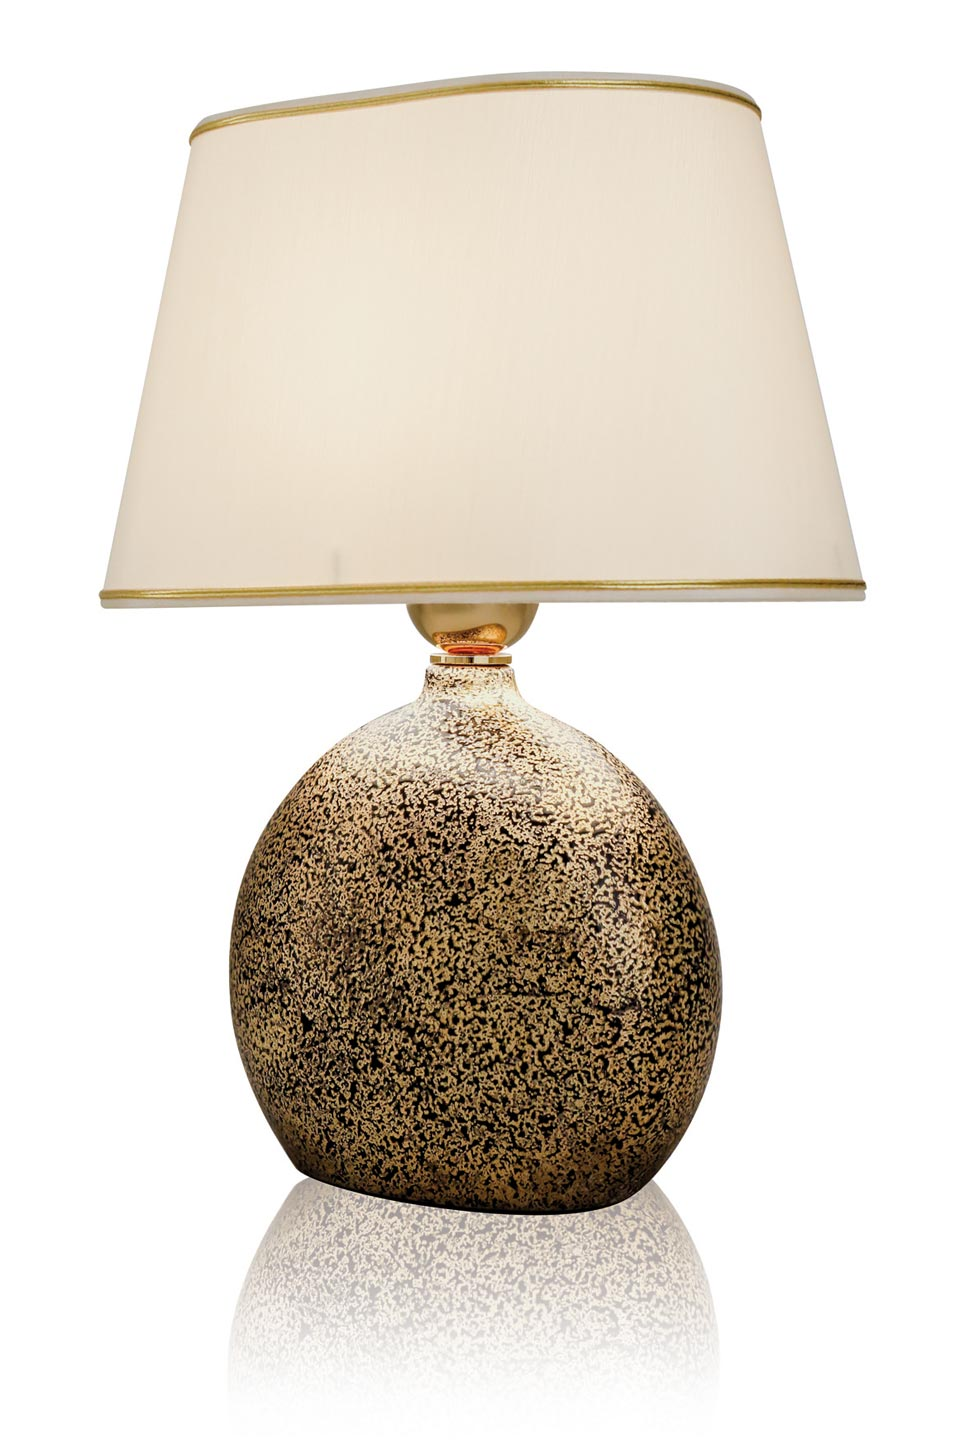 Hel Small Mottled Ceramic Table Lamp Le Dauphin Classical Lamp In